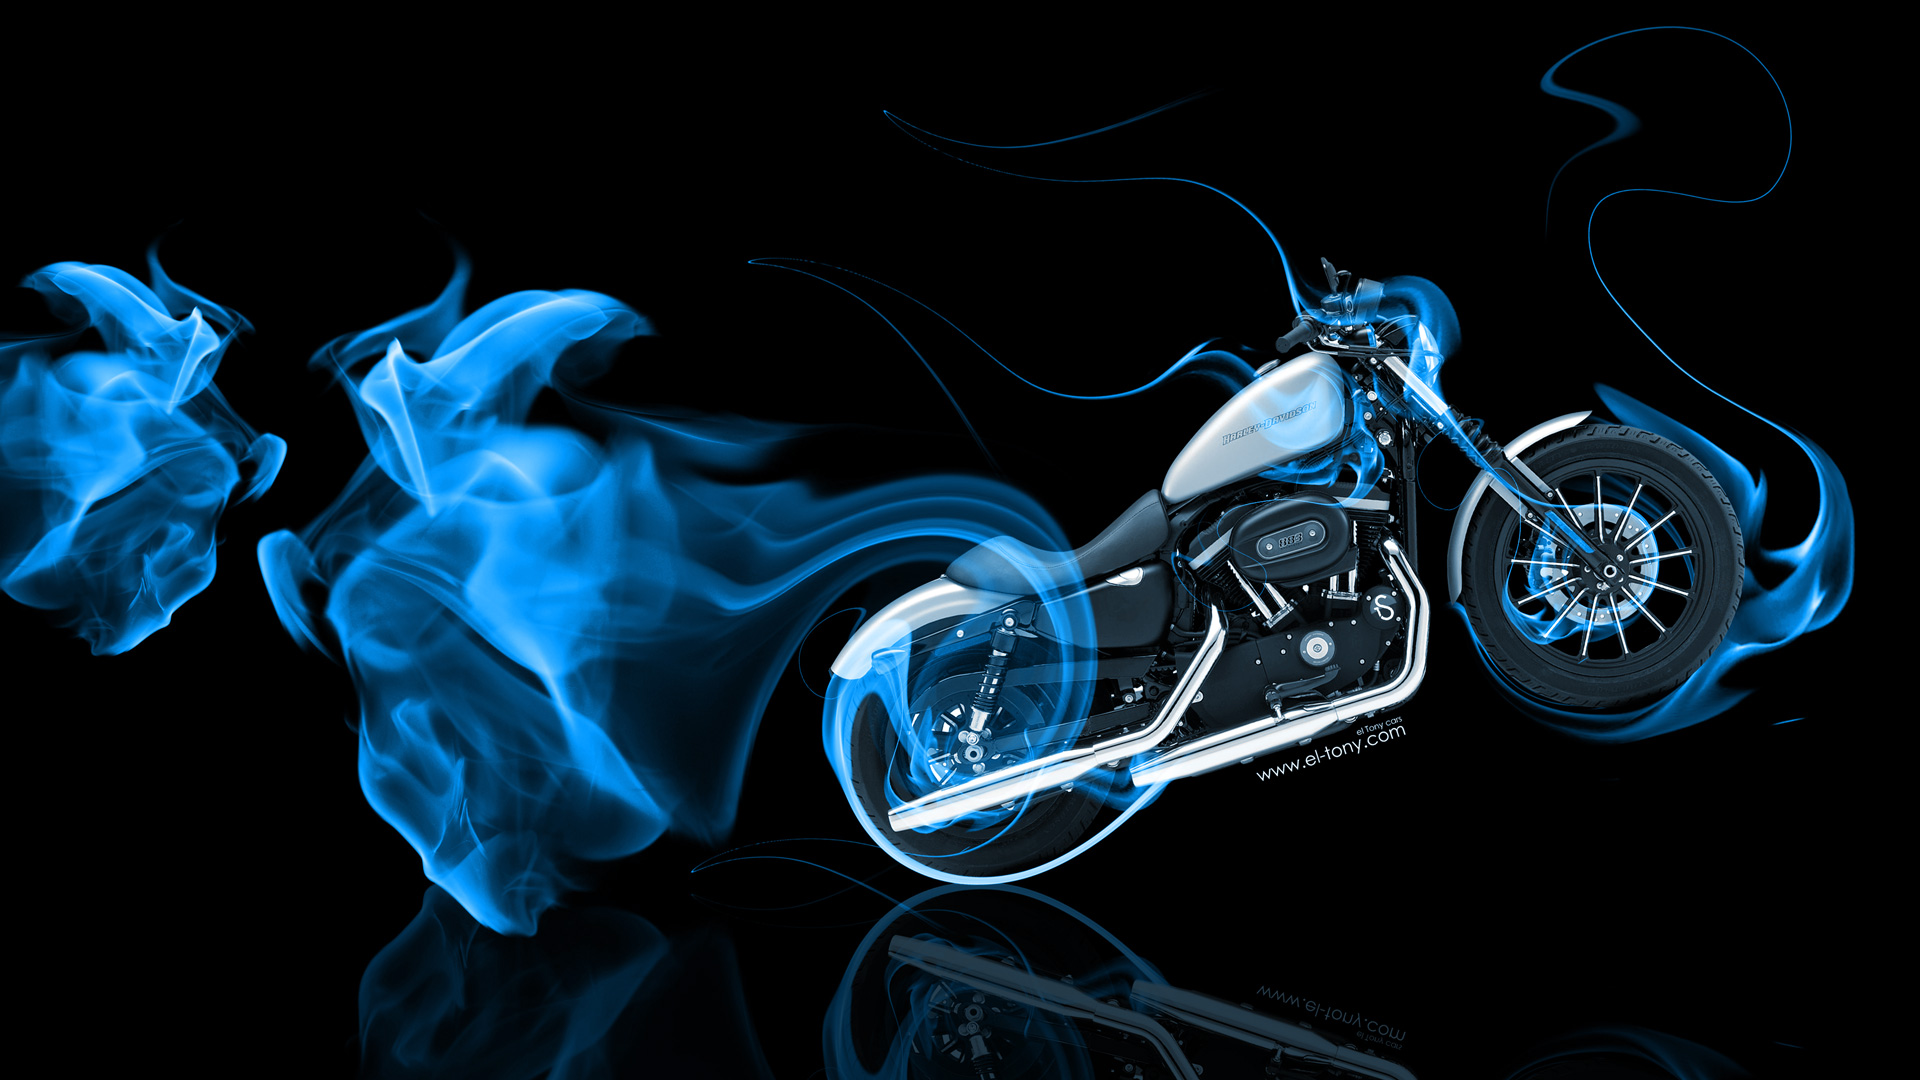 Moto Harley Davidson Side Super Blue Fire Bike .